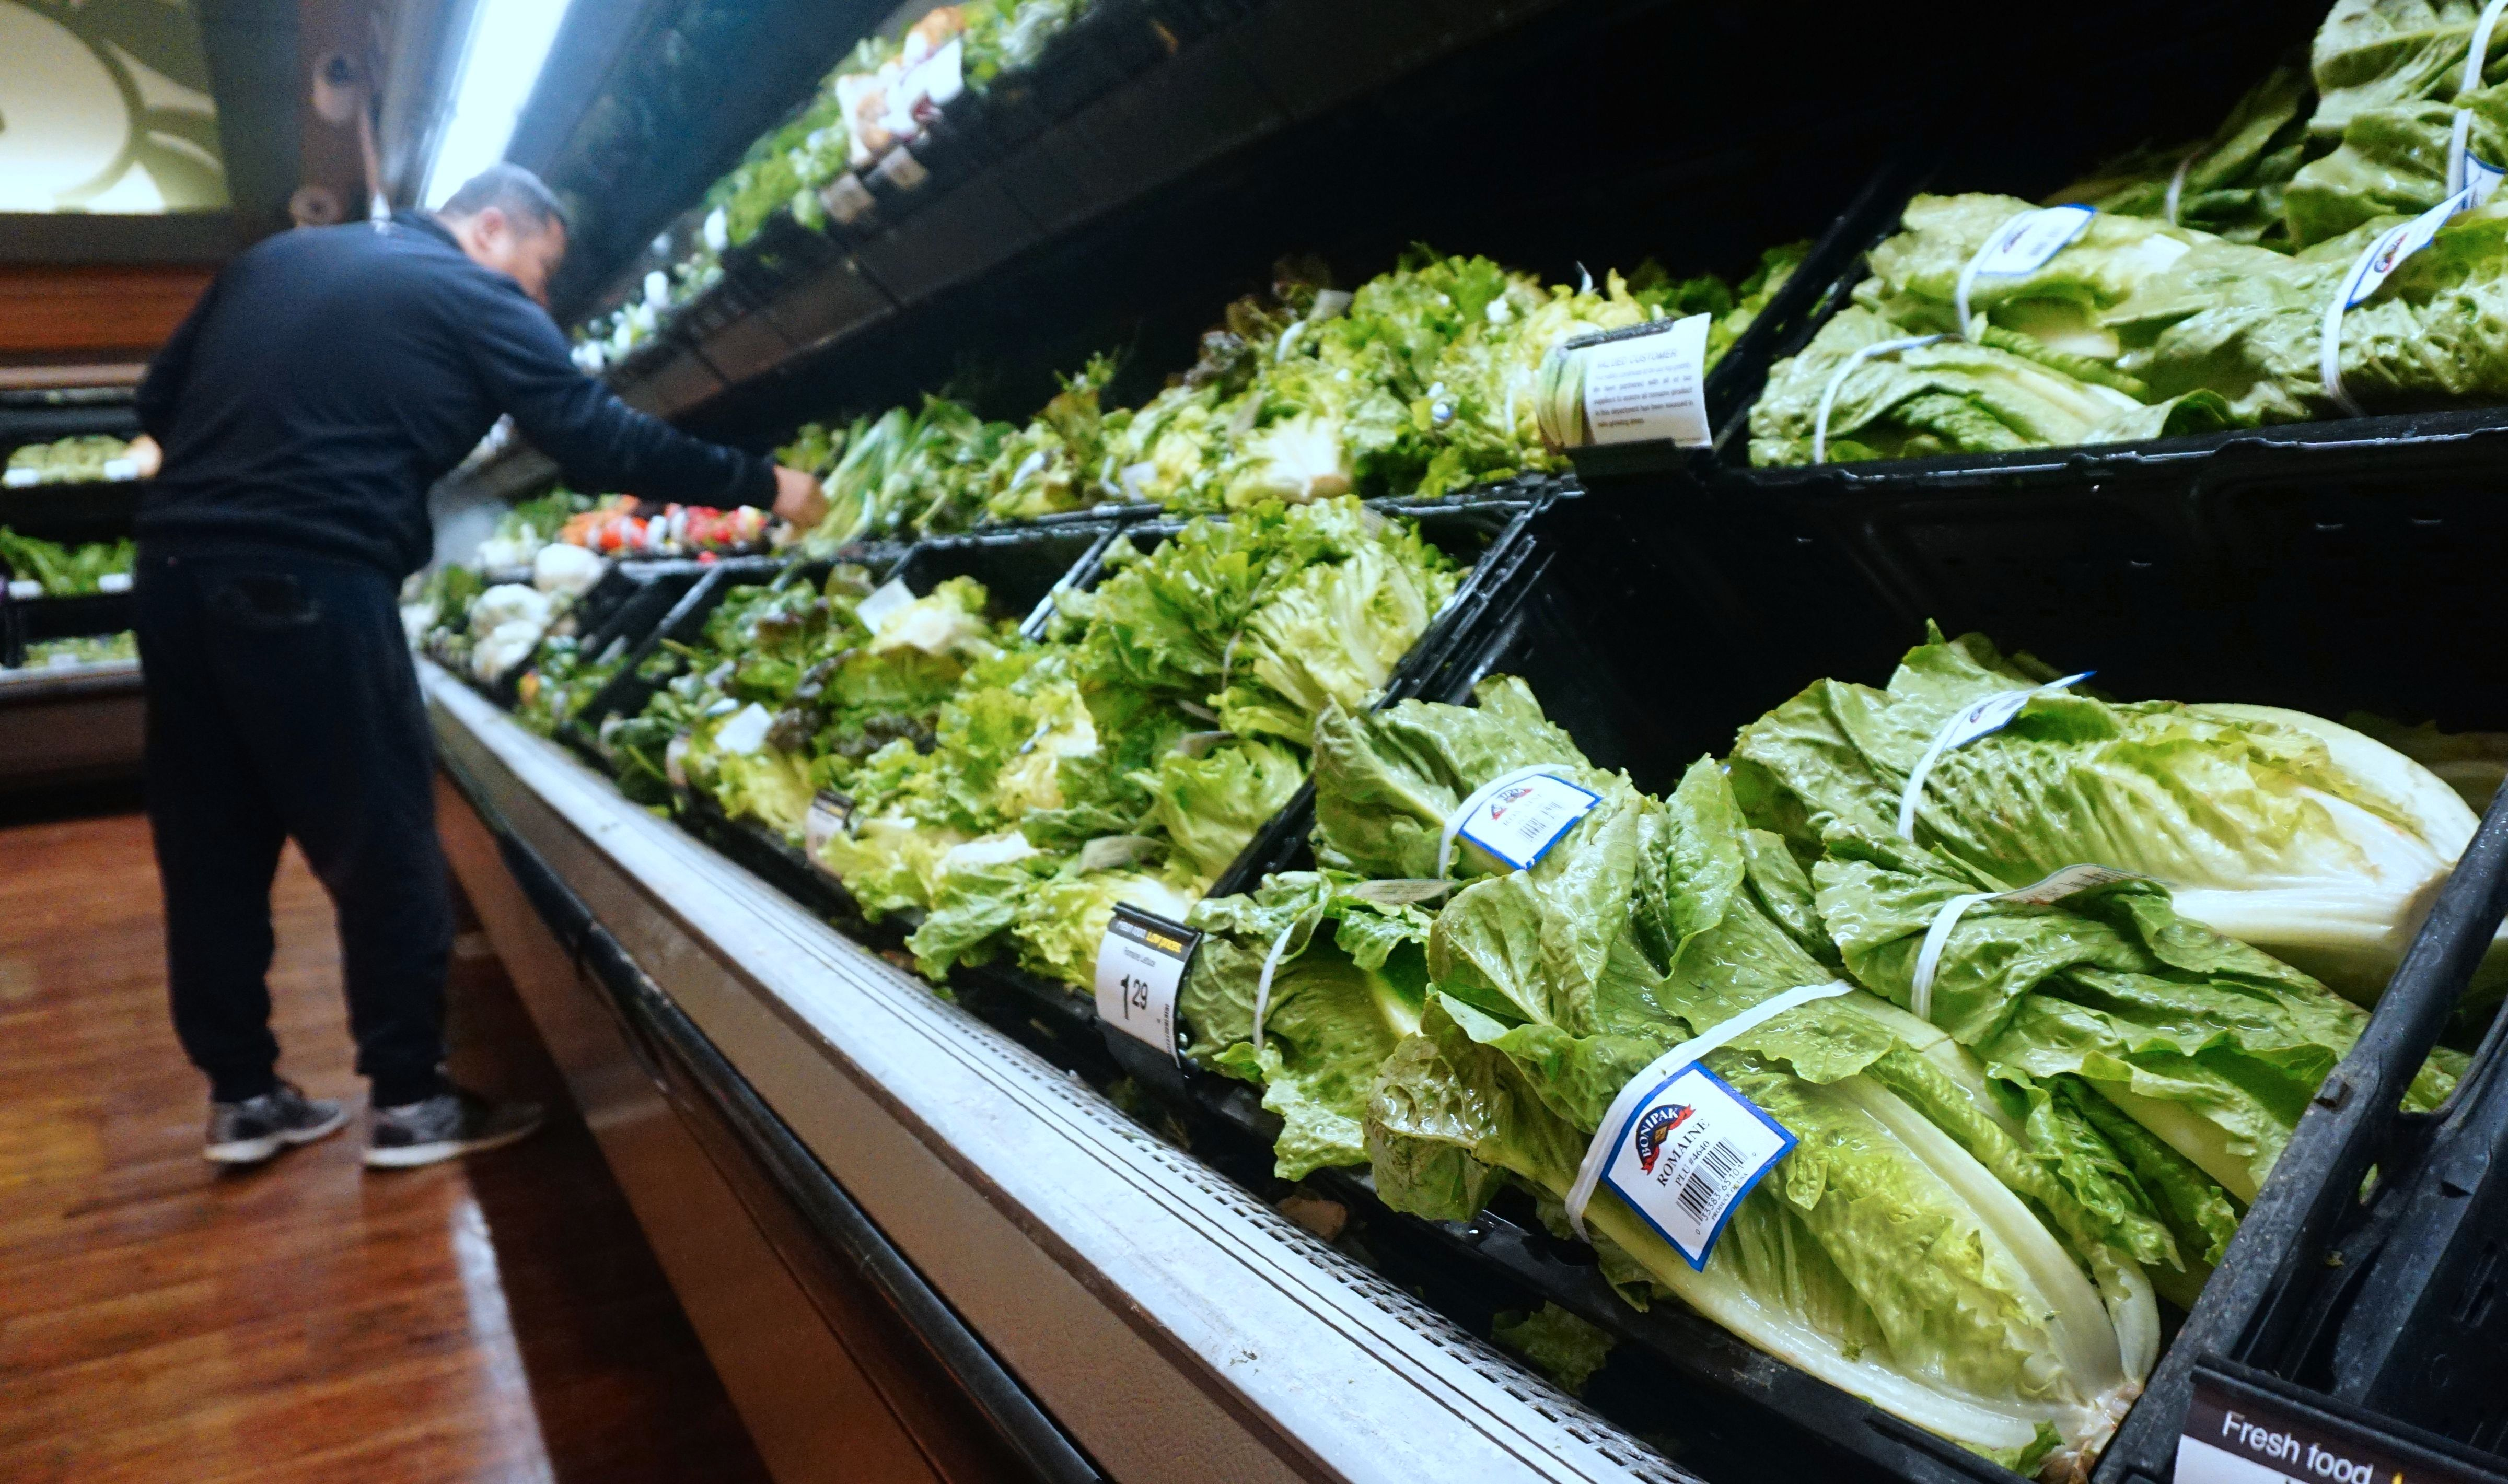 American Consumers Told: Romaine Lettuce Is Unsafe To Eat And Should Be Thrown